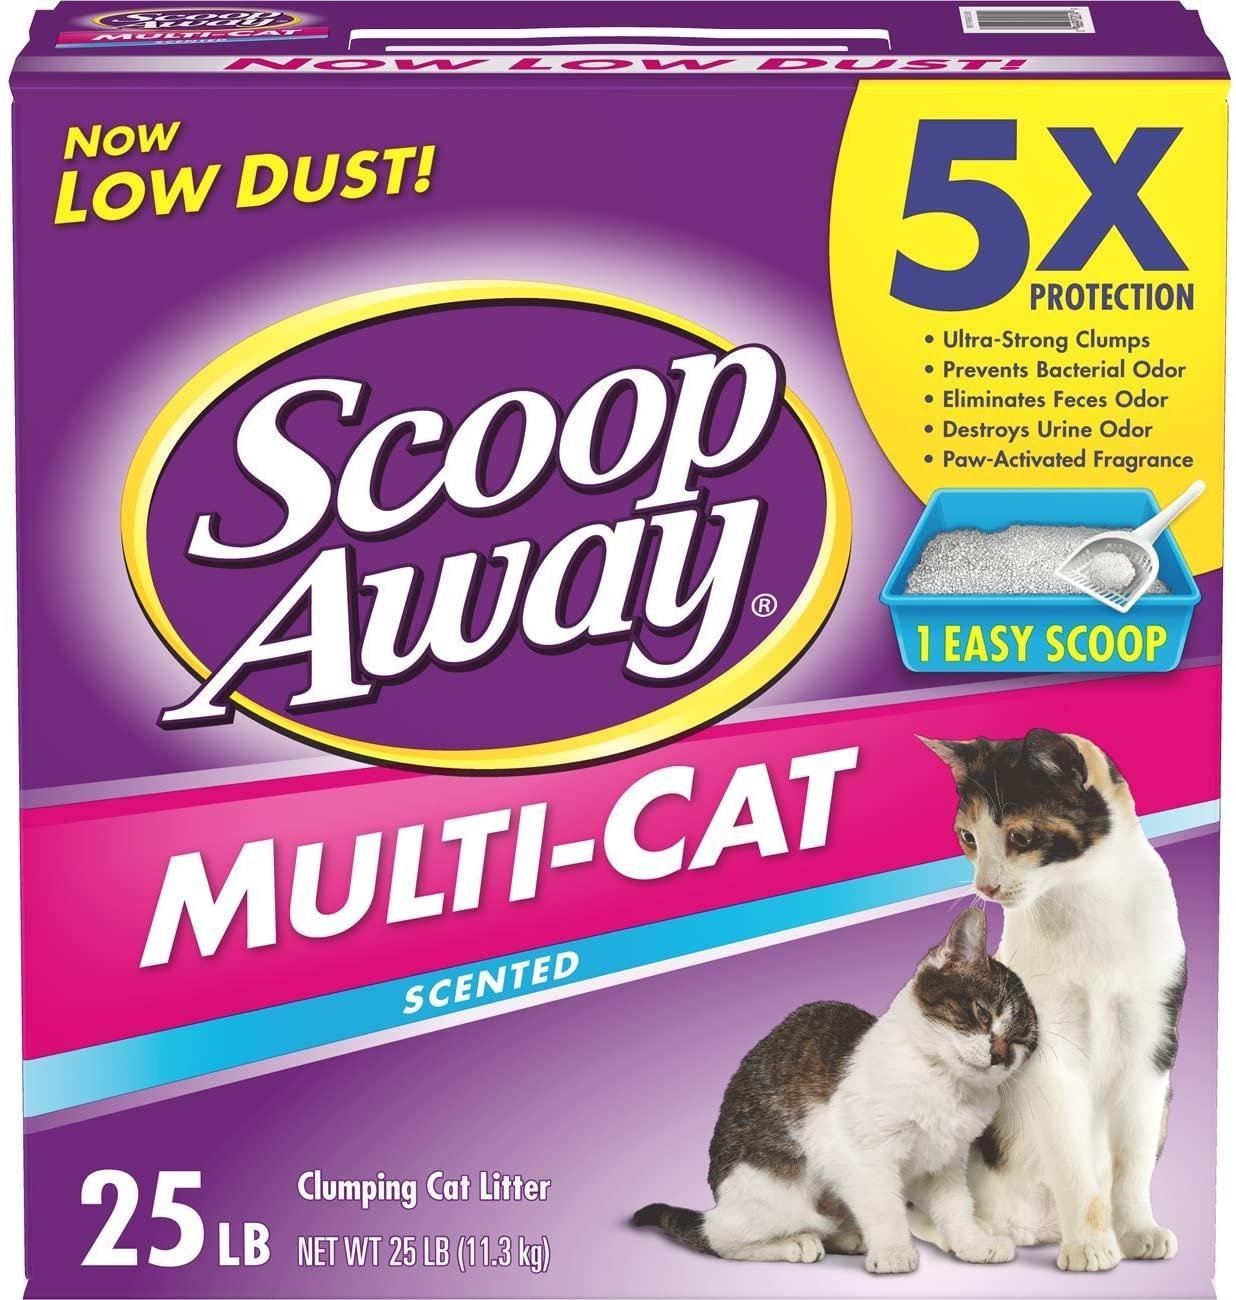 Scoop Away Multi-Cat Scented Cat Litter Image